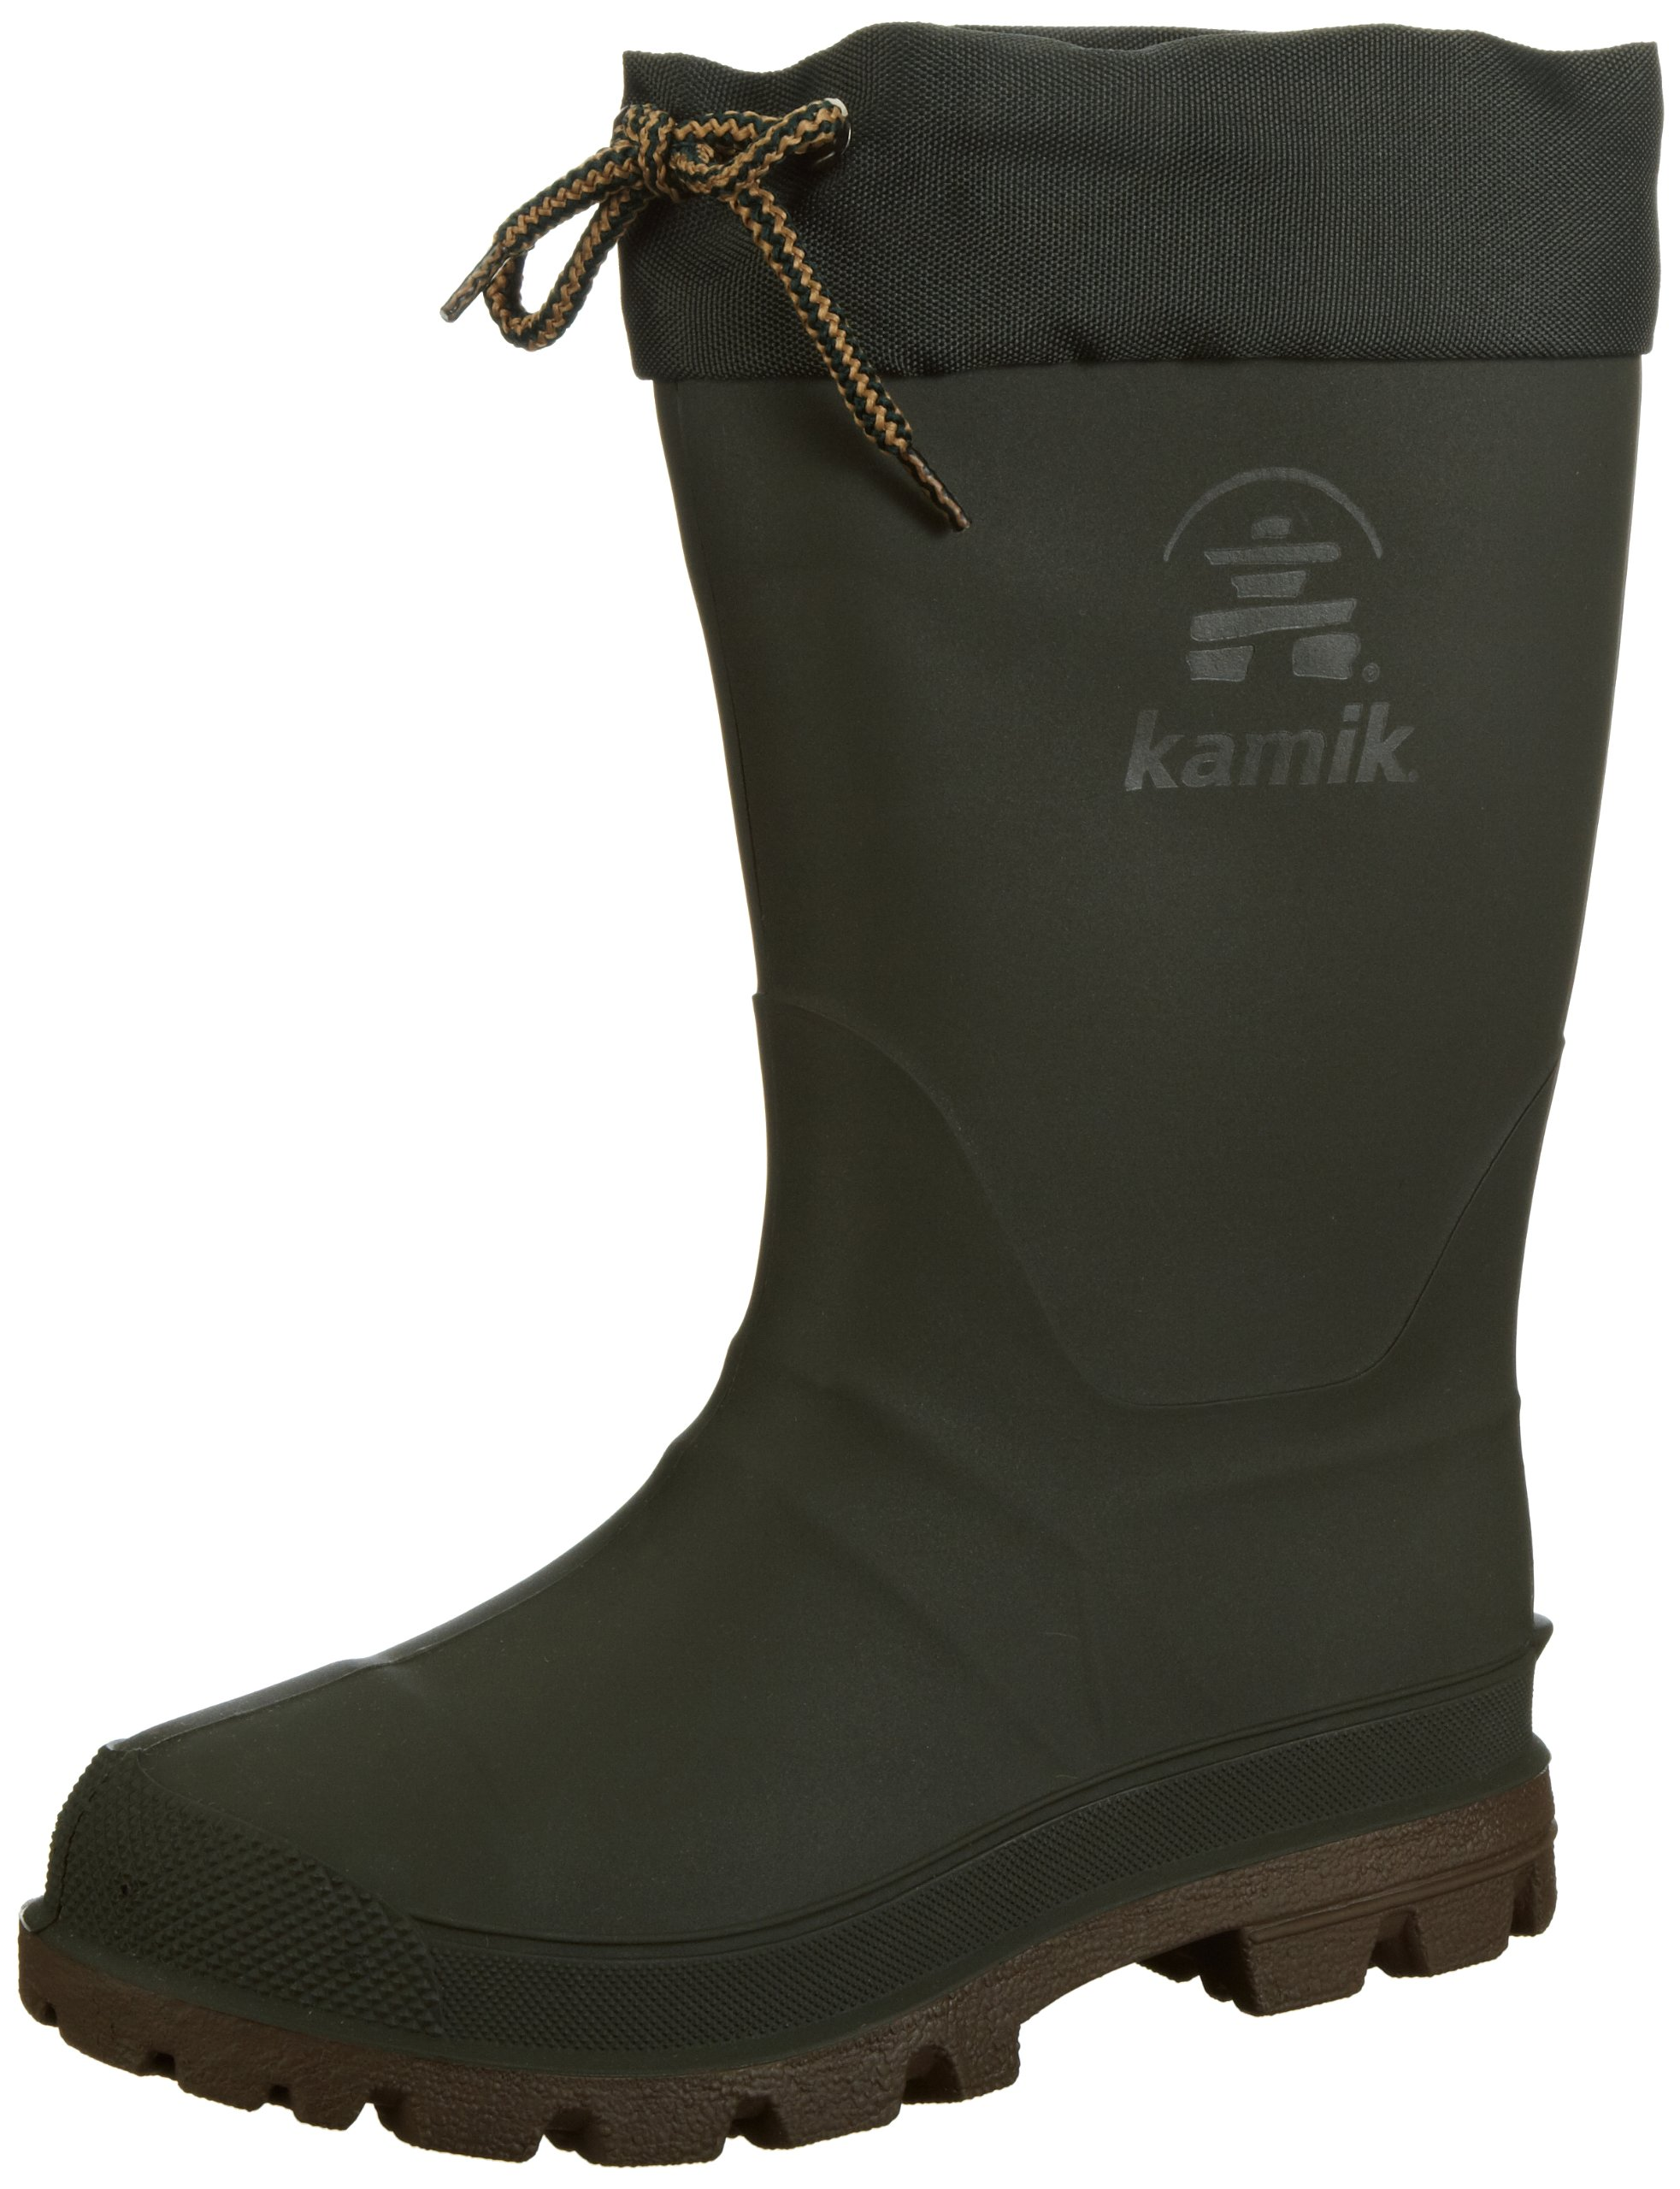 Kamik Kids Icebreaker Snow Boots Khaki / Brown Sole 5 by Kamik